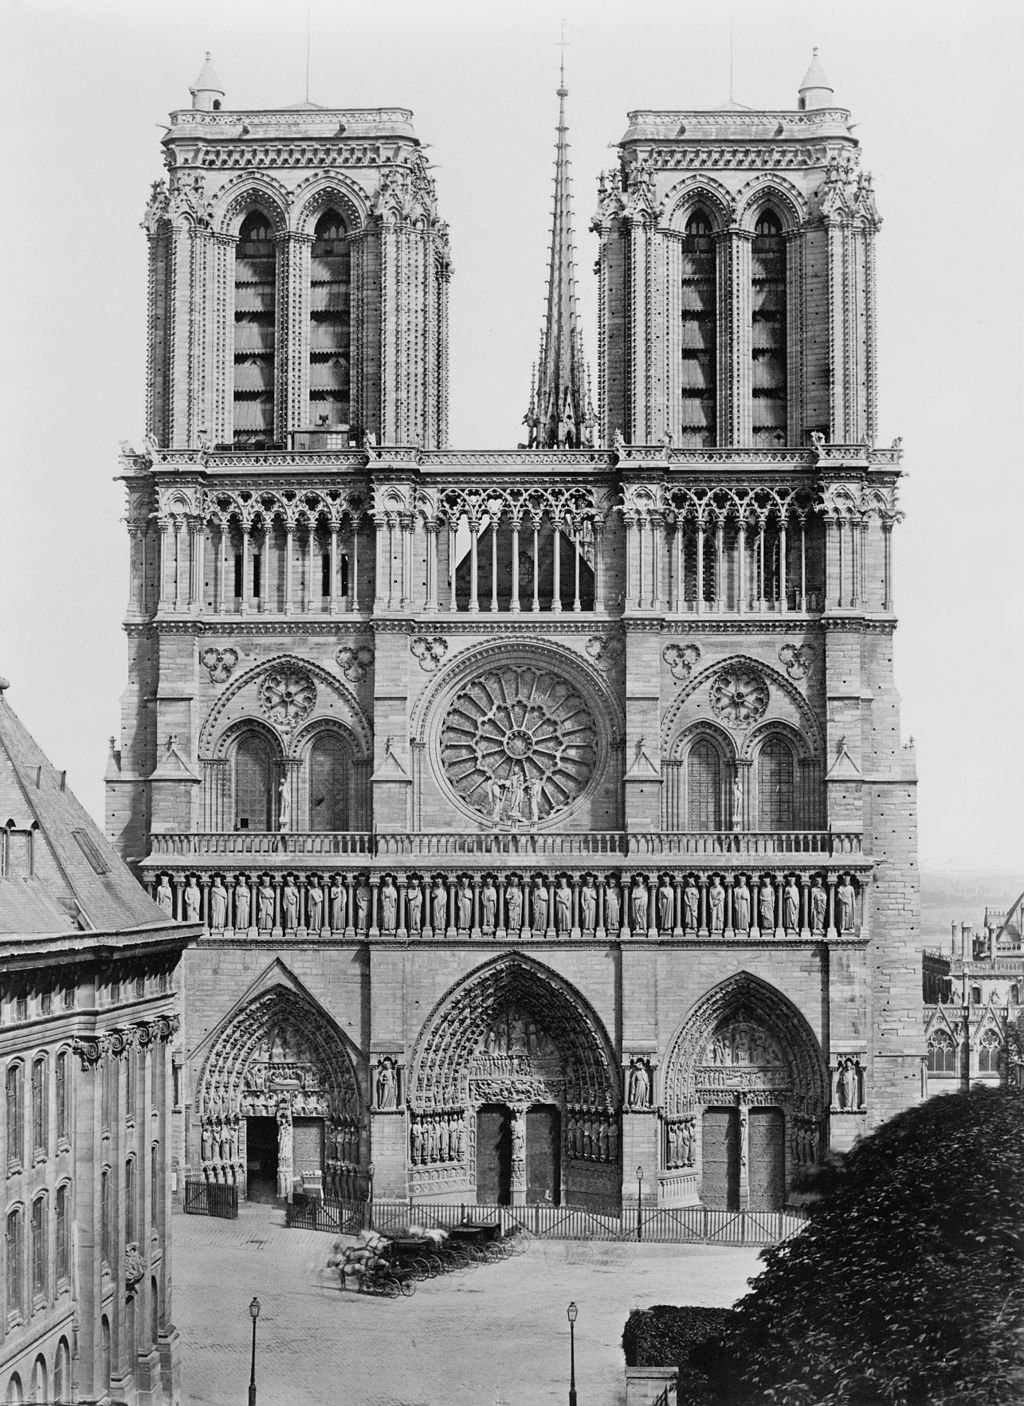 Facade of Notre-Dame de Paris between 1851 and 1870